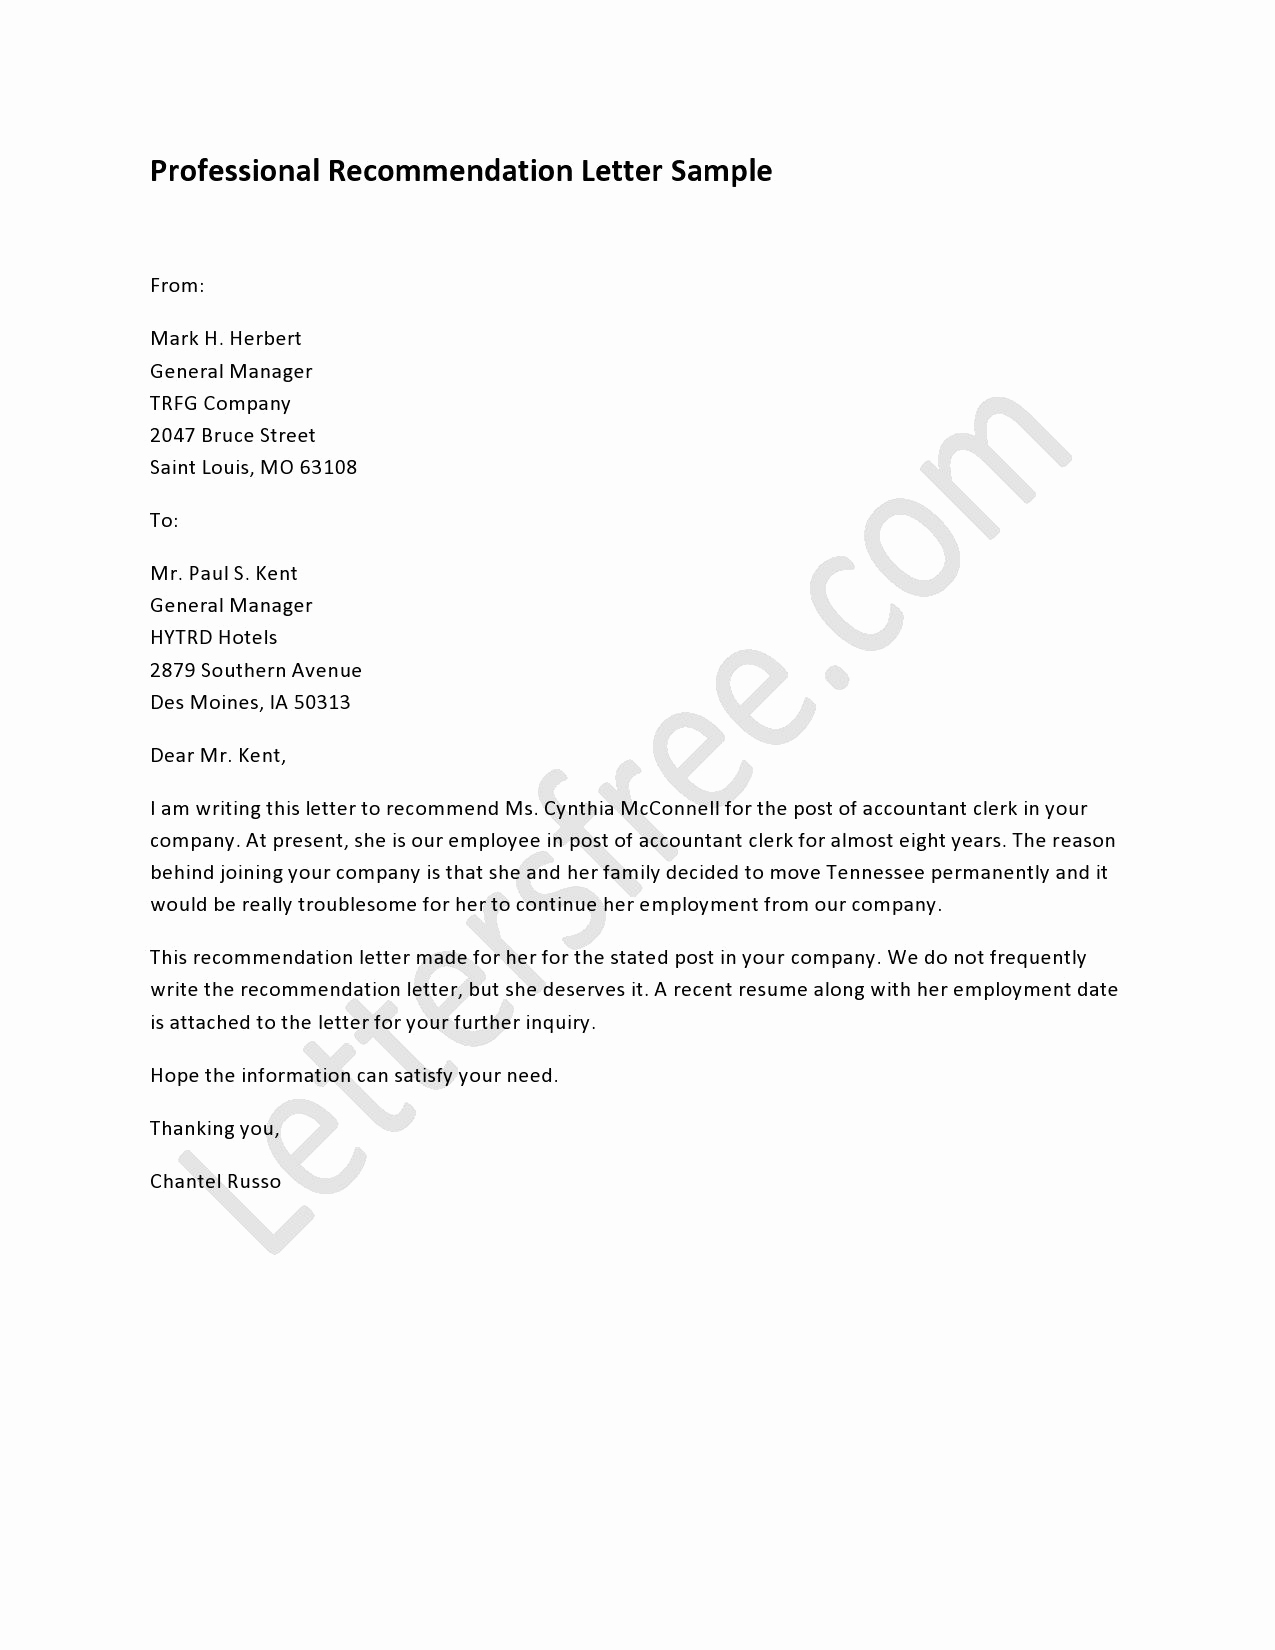 Professional Reference Letter Template New Professional Letter Re Mendation Sample for Coworker